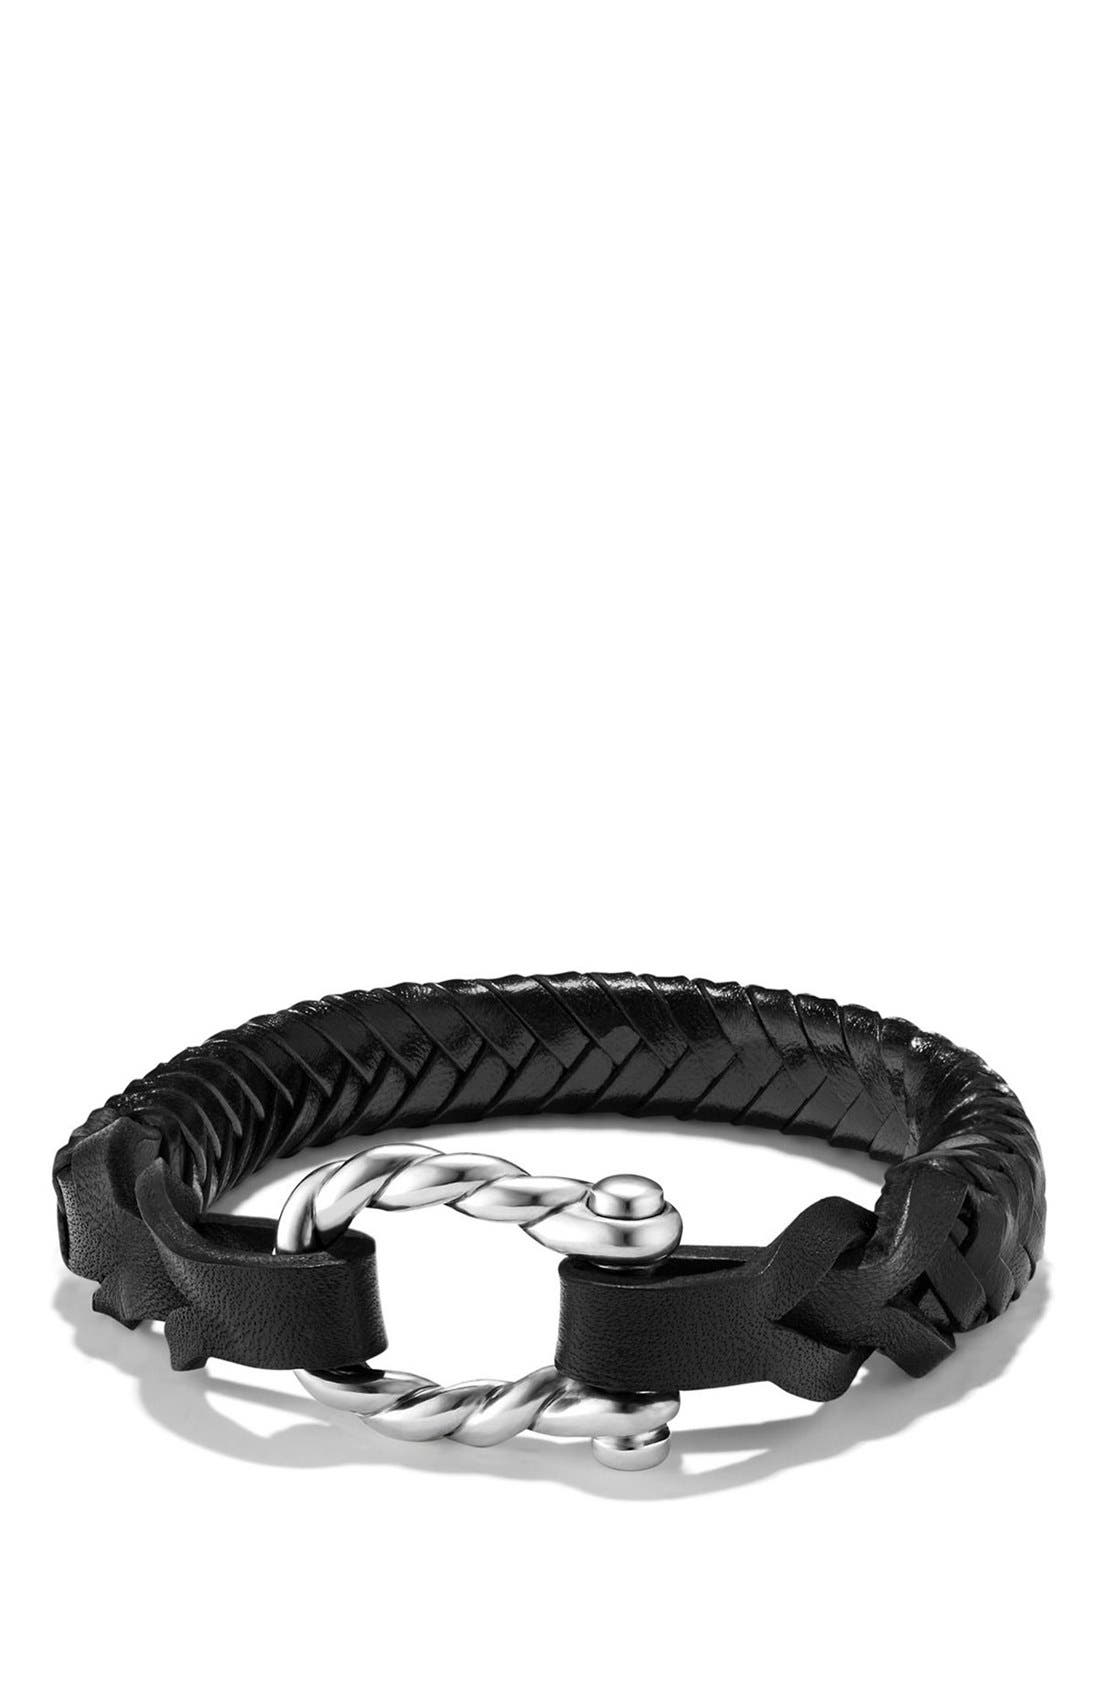 'Maritime' Leather Woven Shackle Bracelet,                         Main,                         color, SILVER/ BLACK